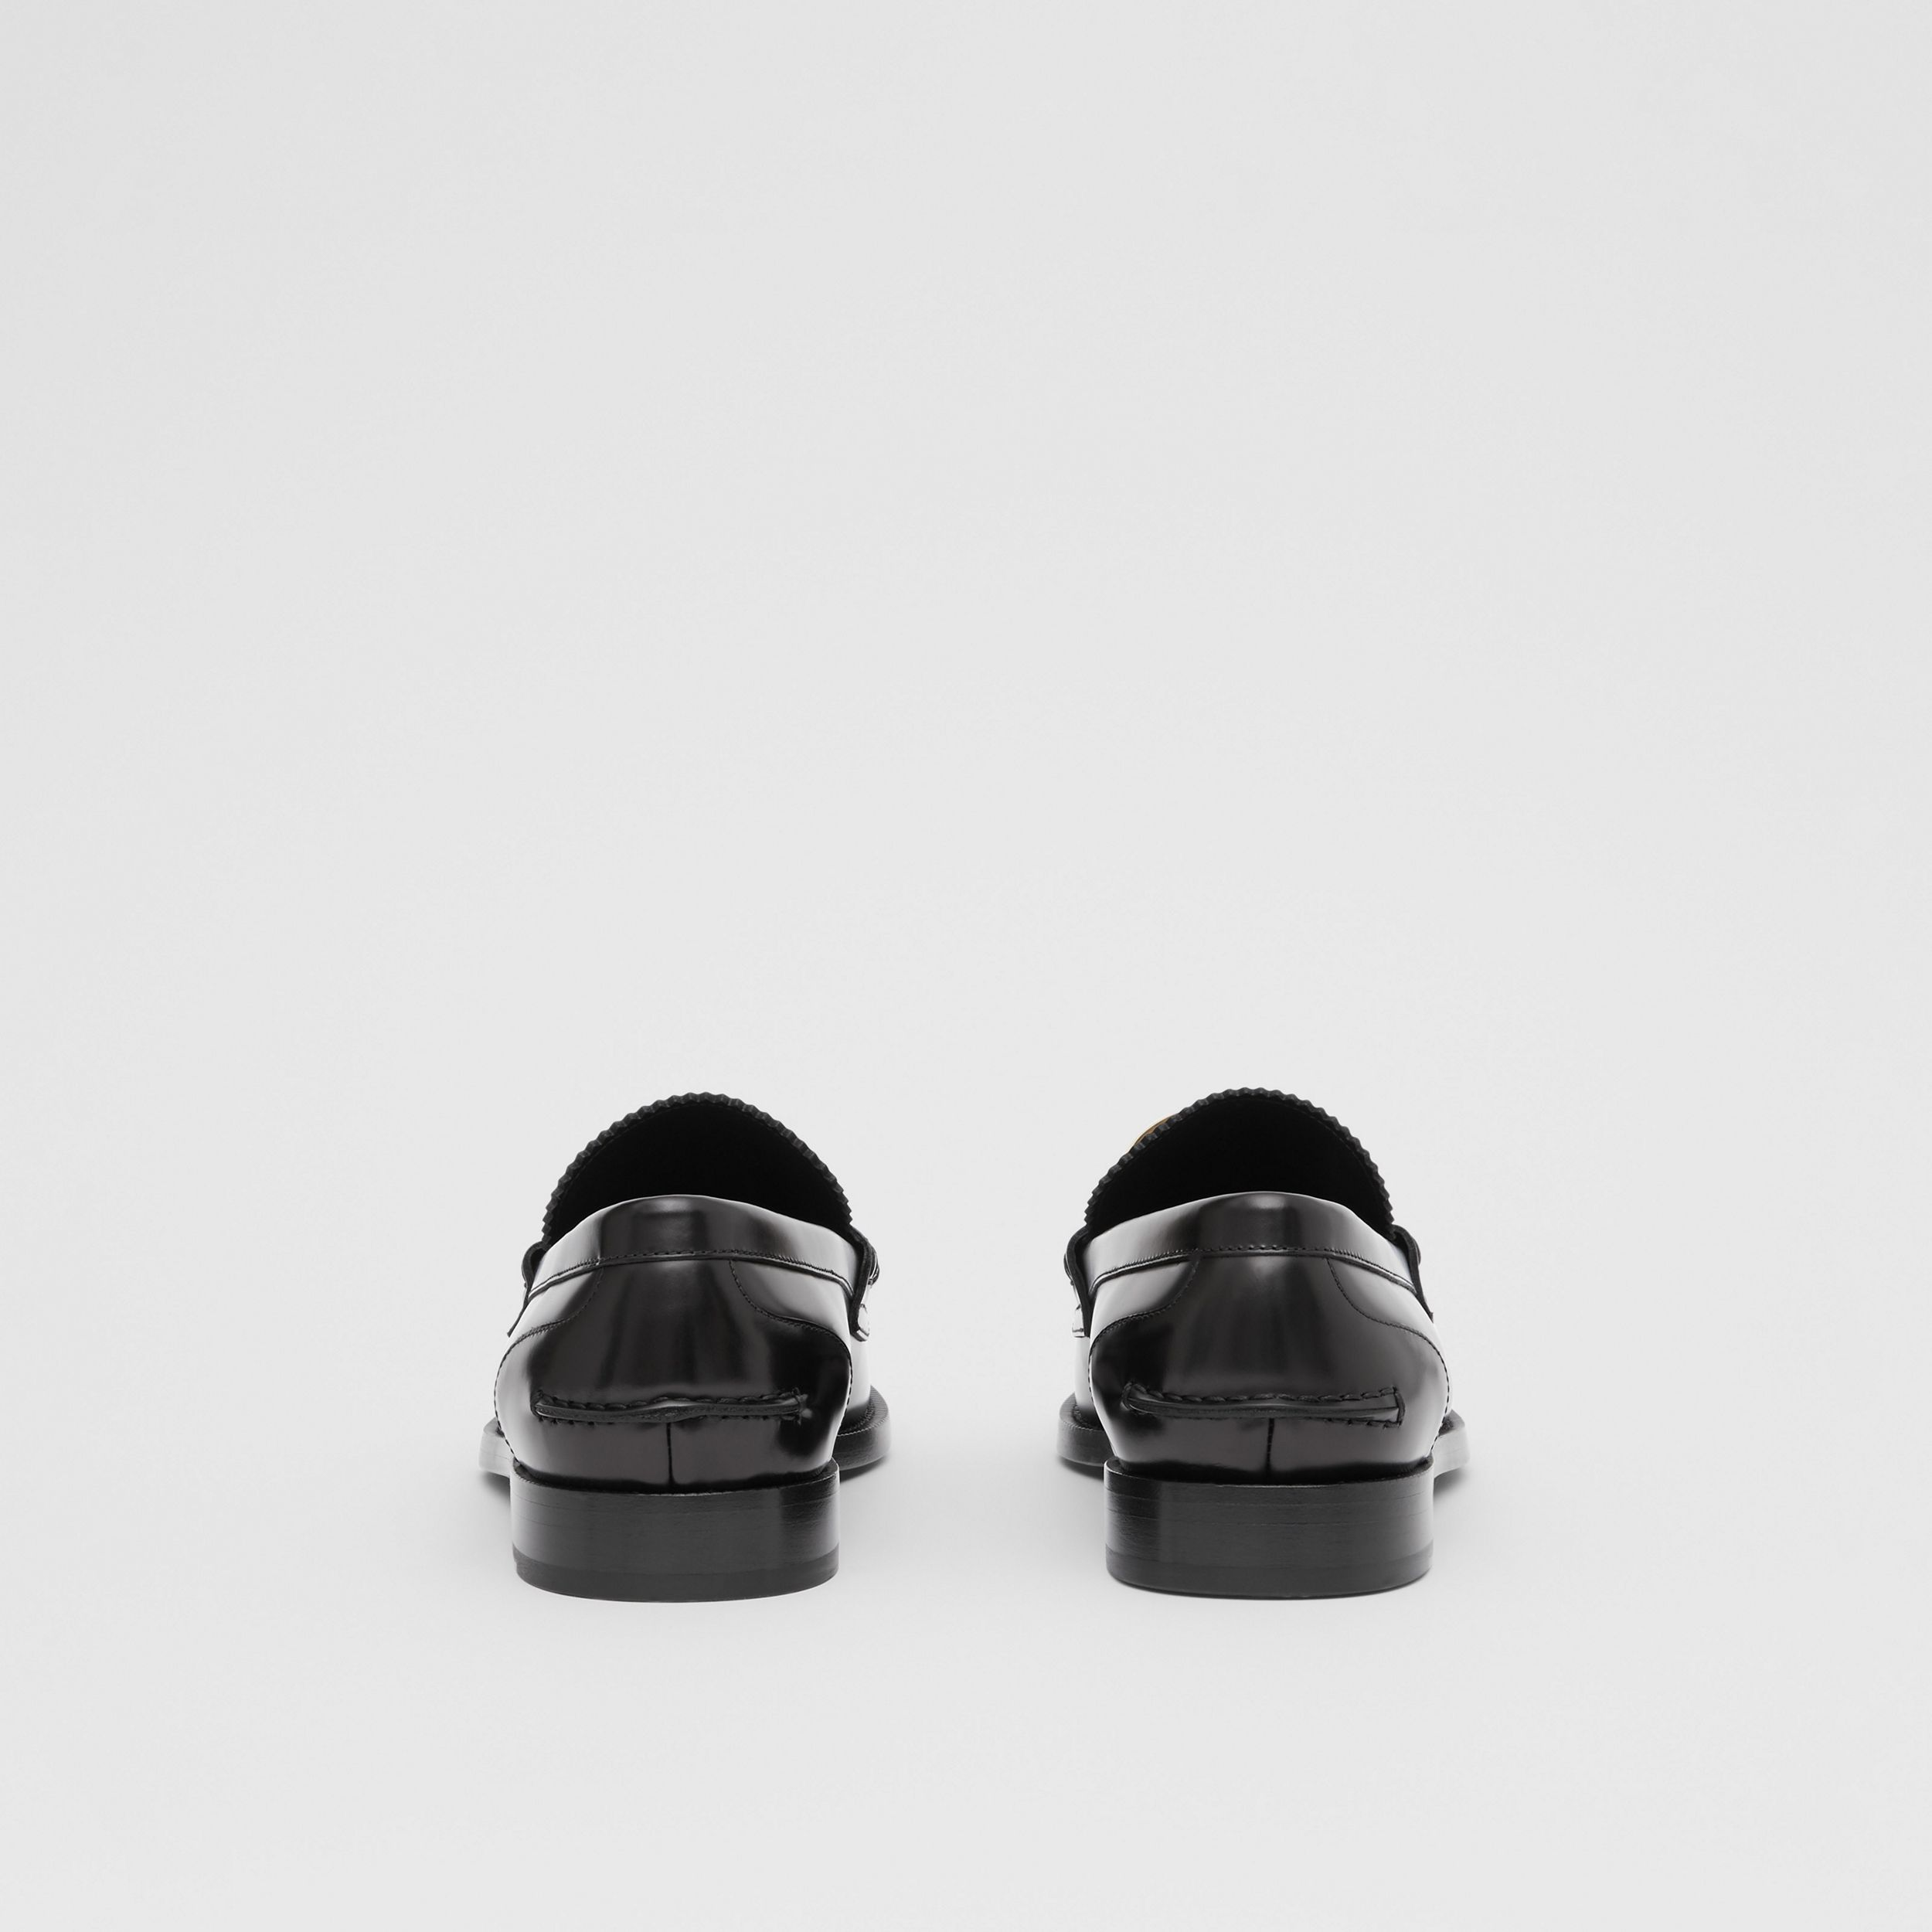 Monogram Motif Leather Loafers in Black - Men | Burberry Canada - 4